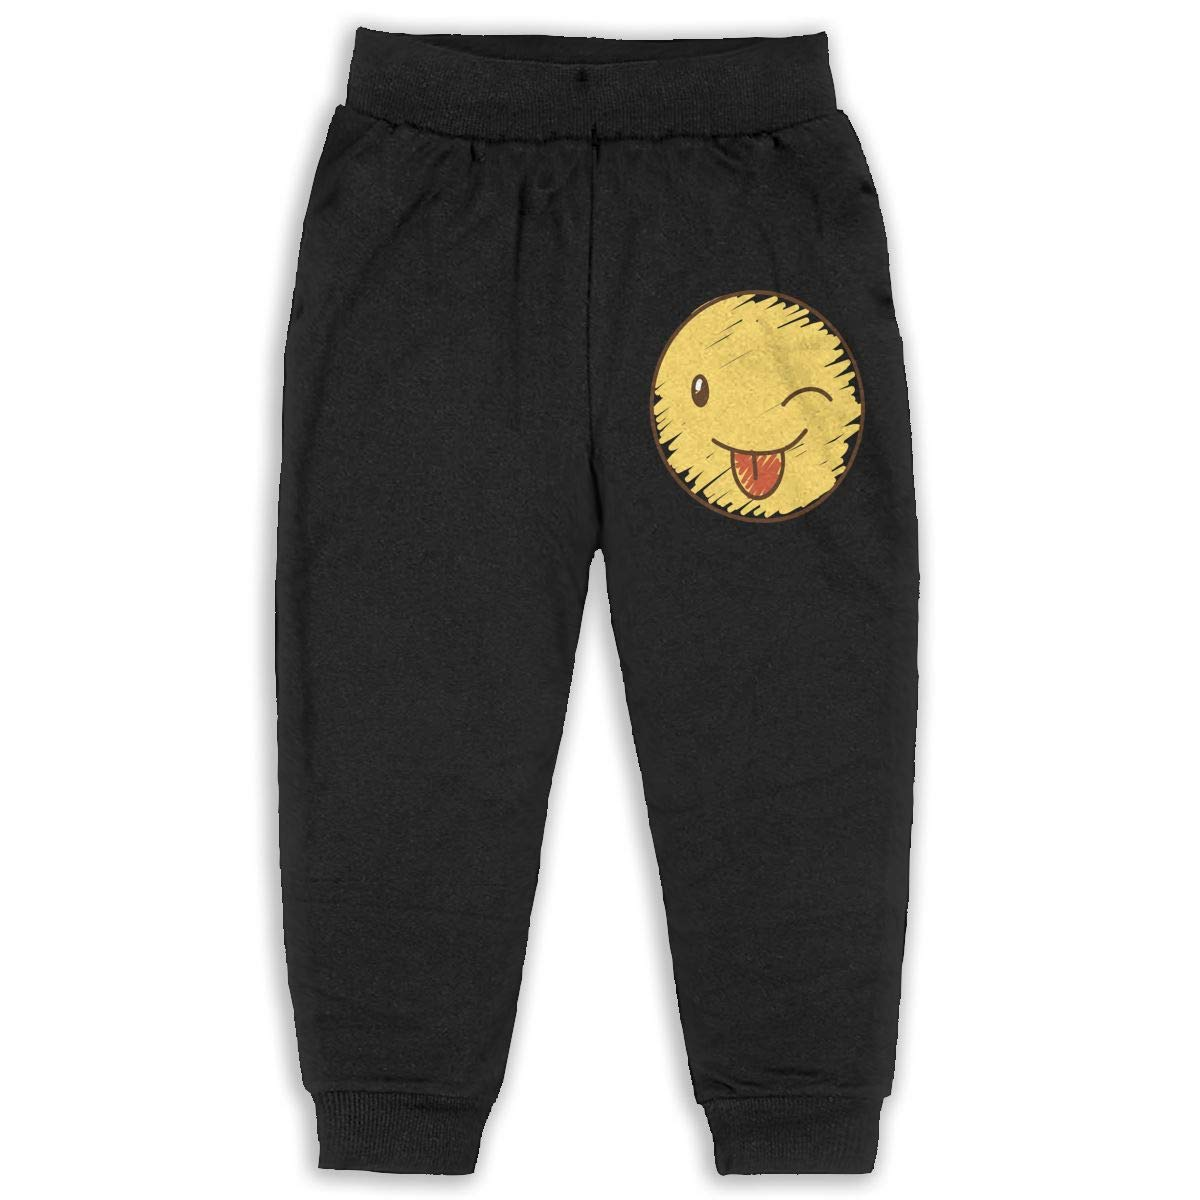 Never-Cold Smiley Yellow Happy Face Boys Cotton Sweatpants Elastic Waist Pants for 2T-6T